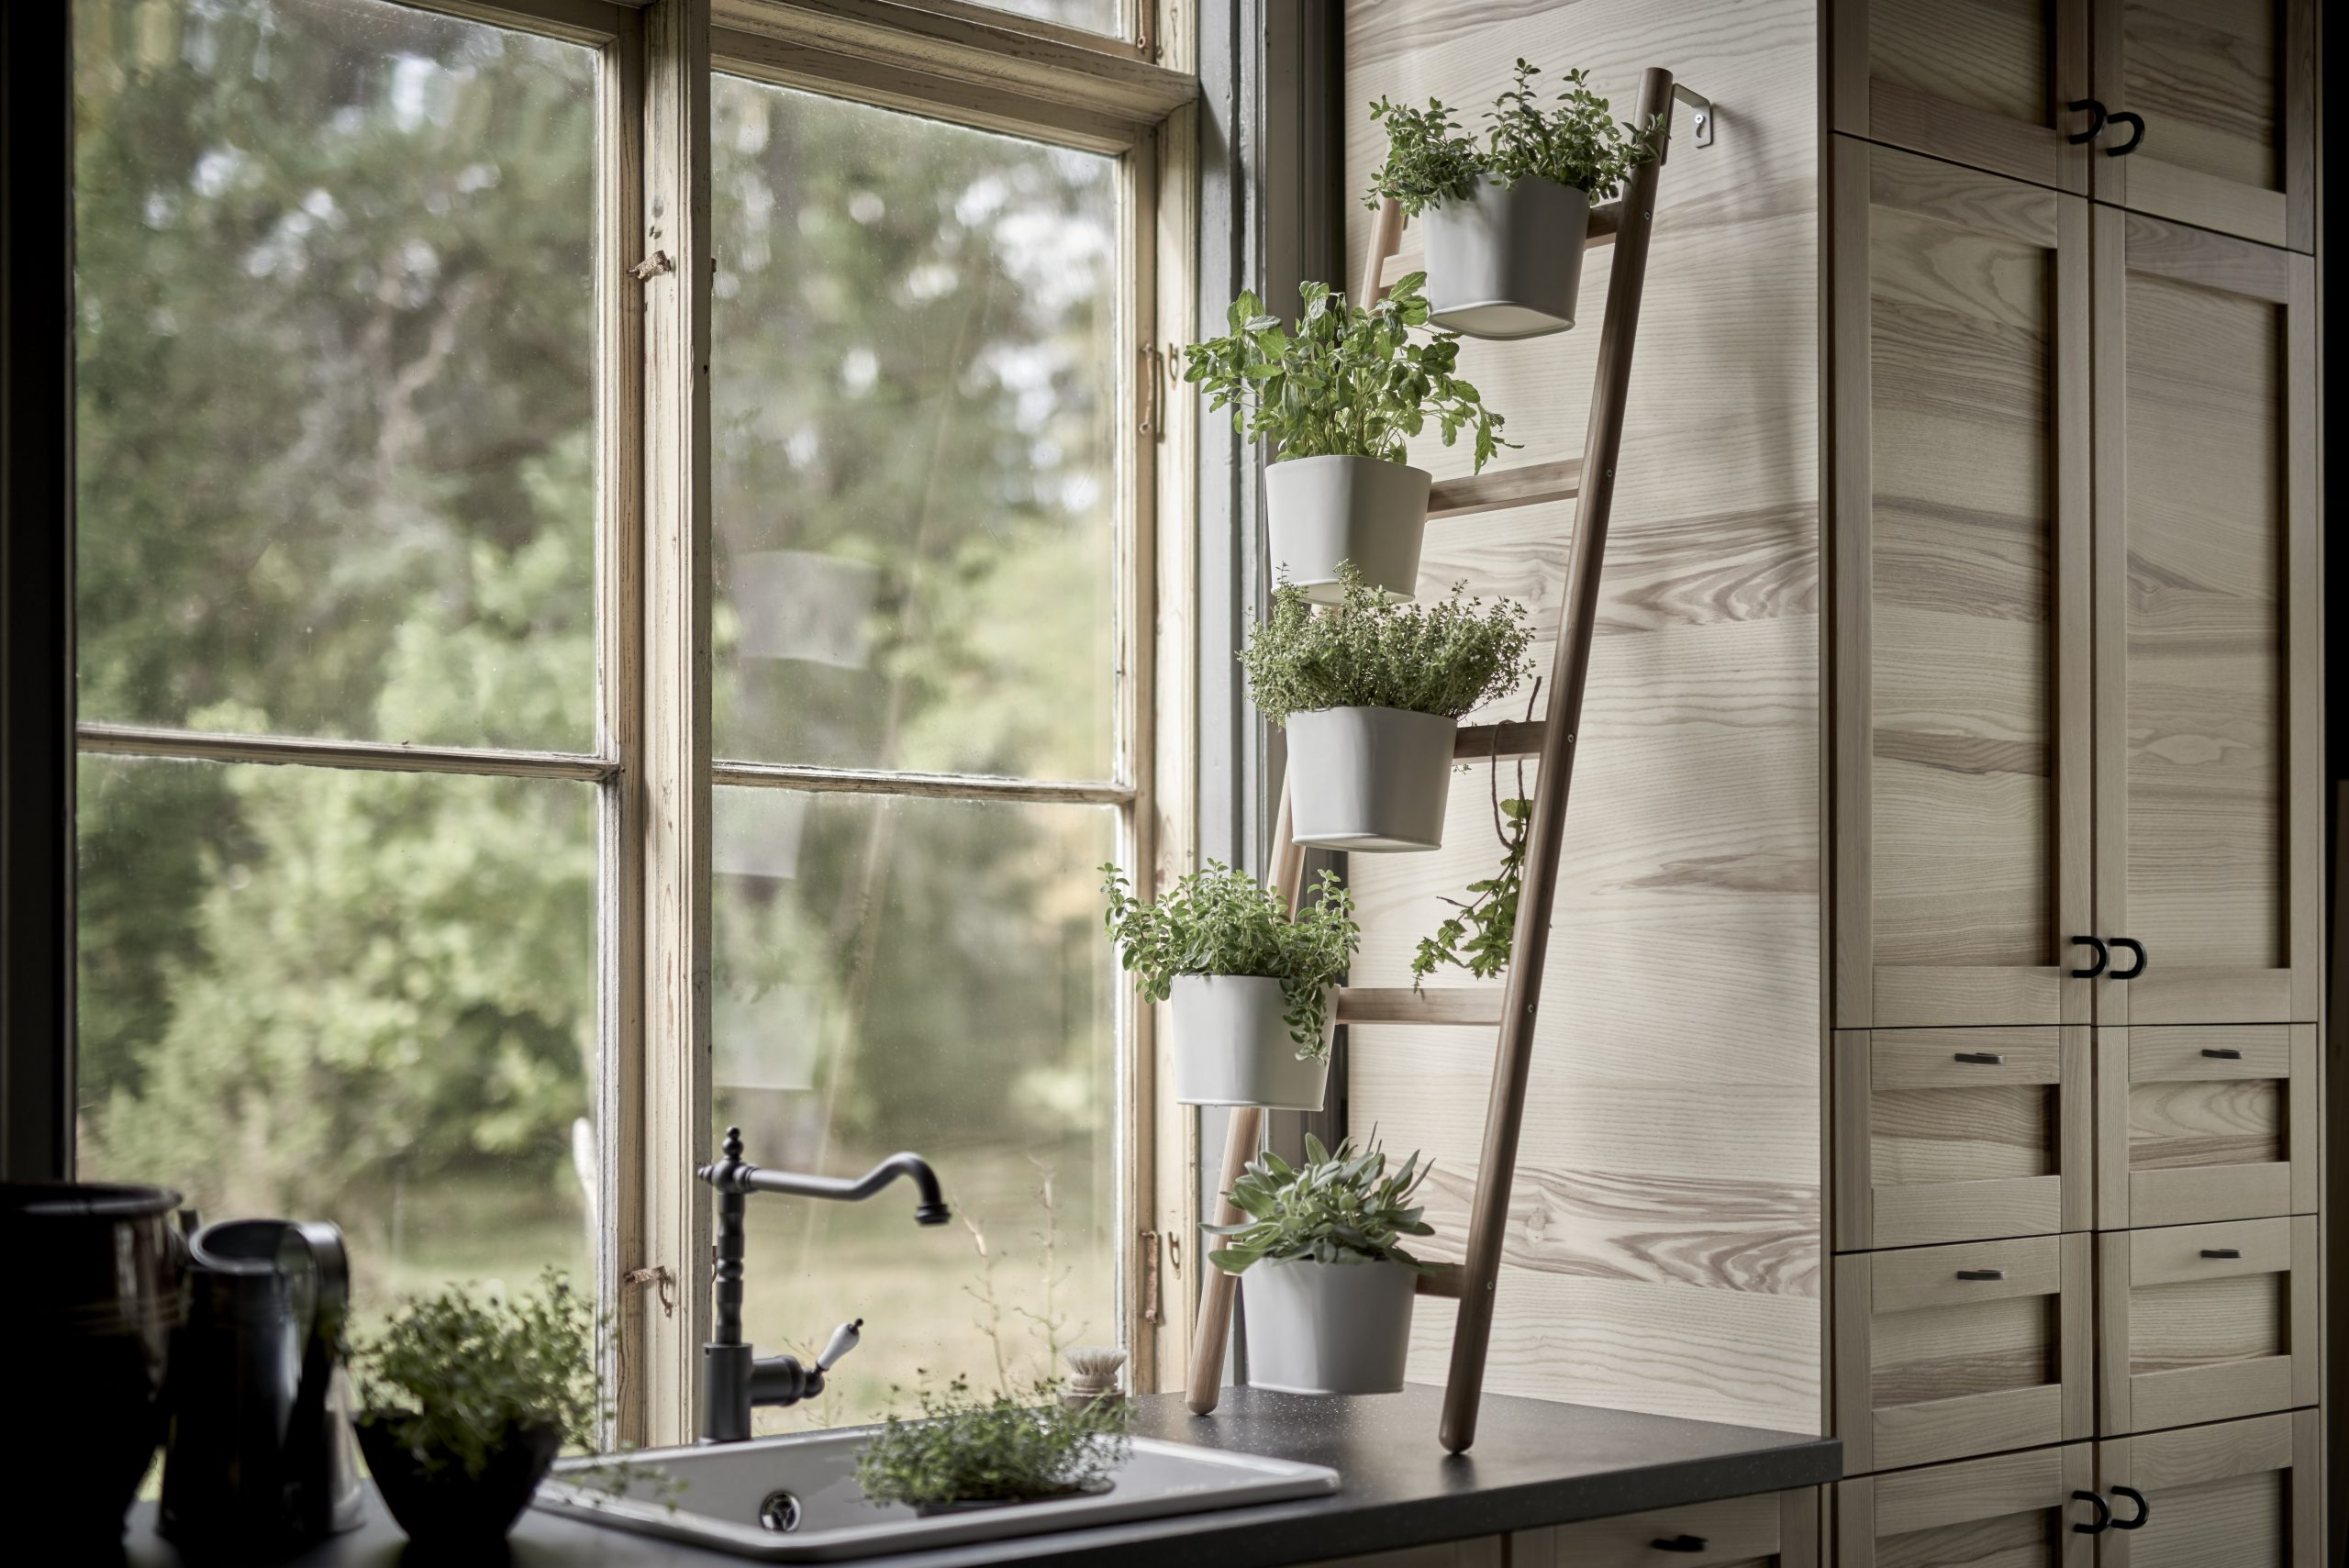 Simphome.com 5 indoor herb garden ideas for your kitchen architectural digest in 2020